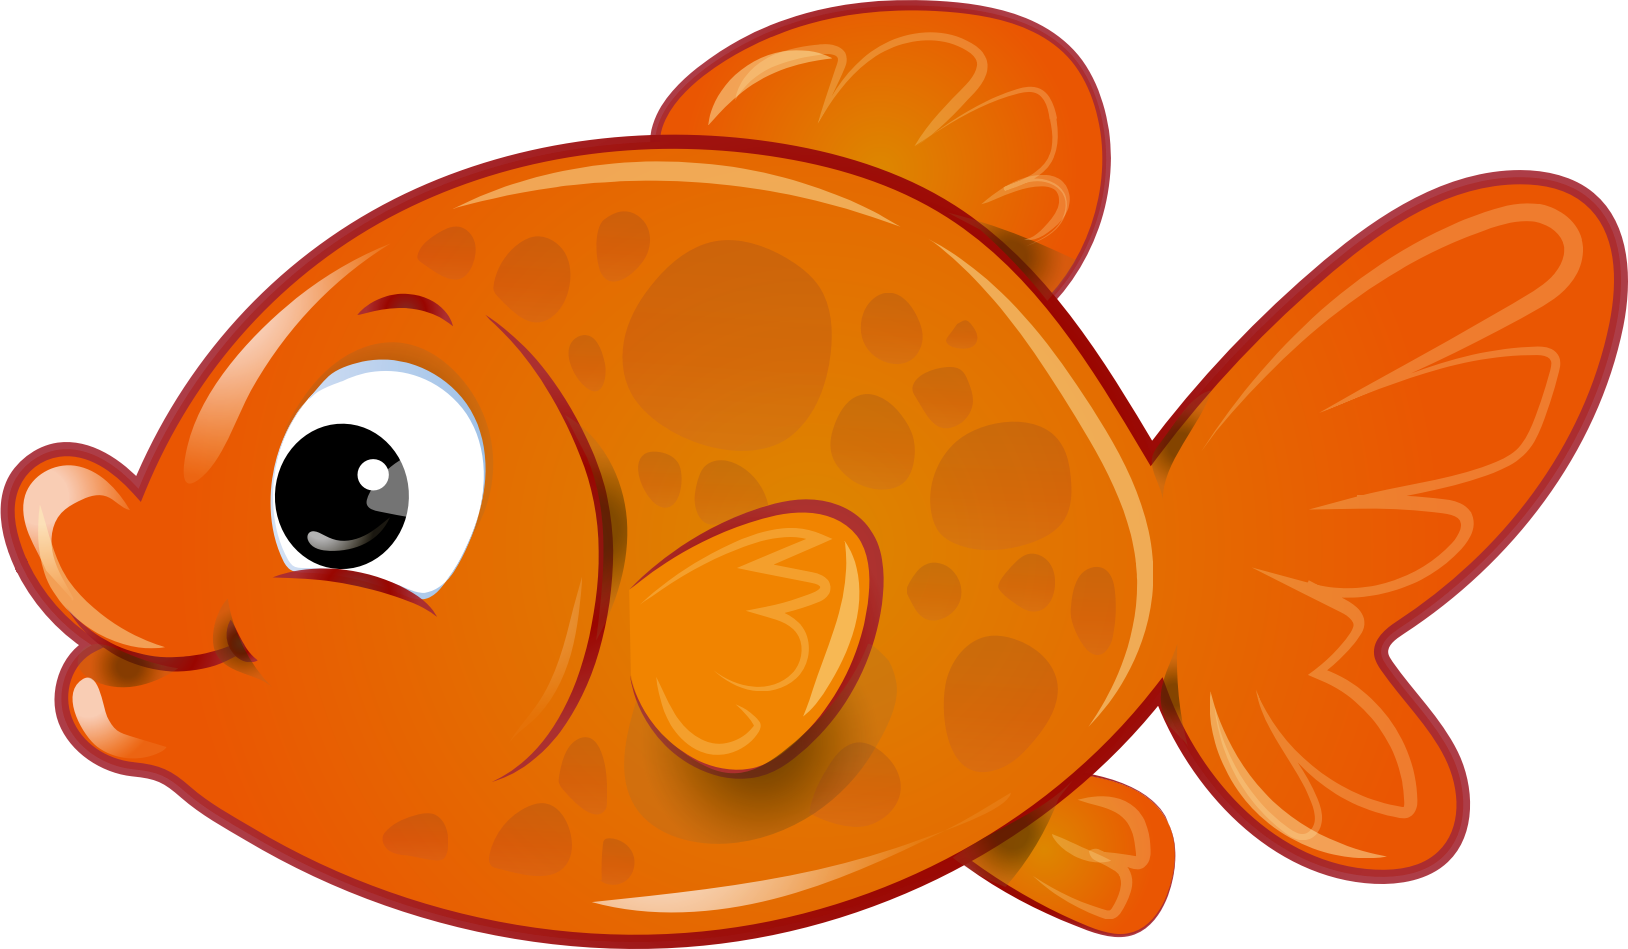 graphic royalty free download Goldfish clipart 4 fish. Food black and white